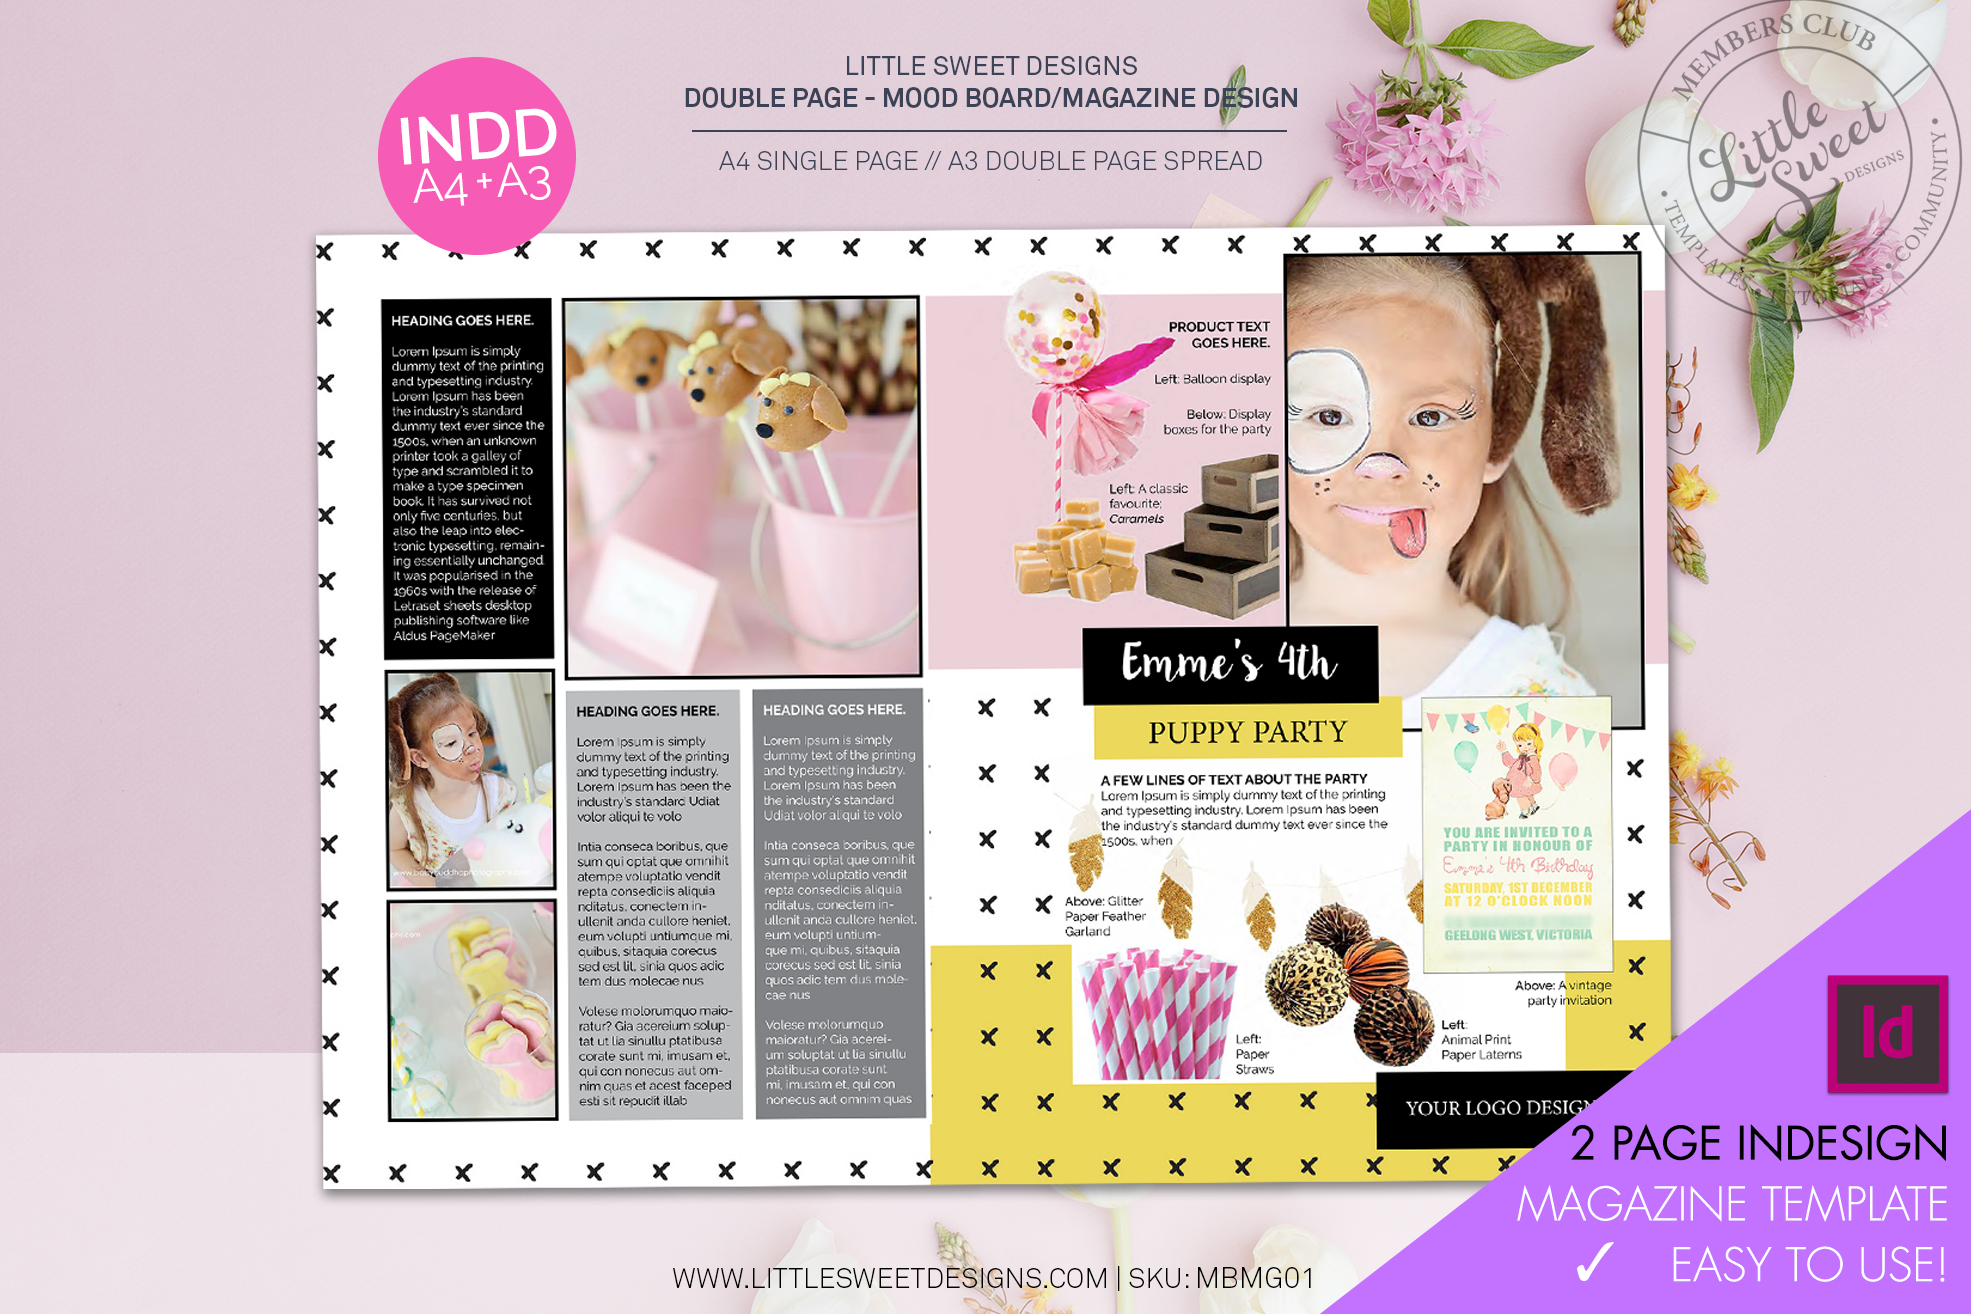 Watch the Video  here  on ' how to edit this template design ' in InDesign.